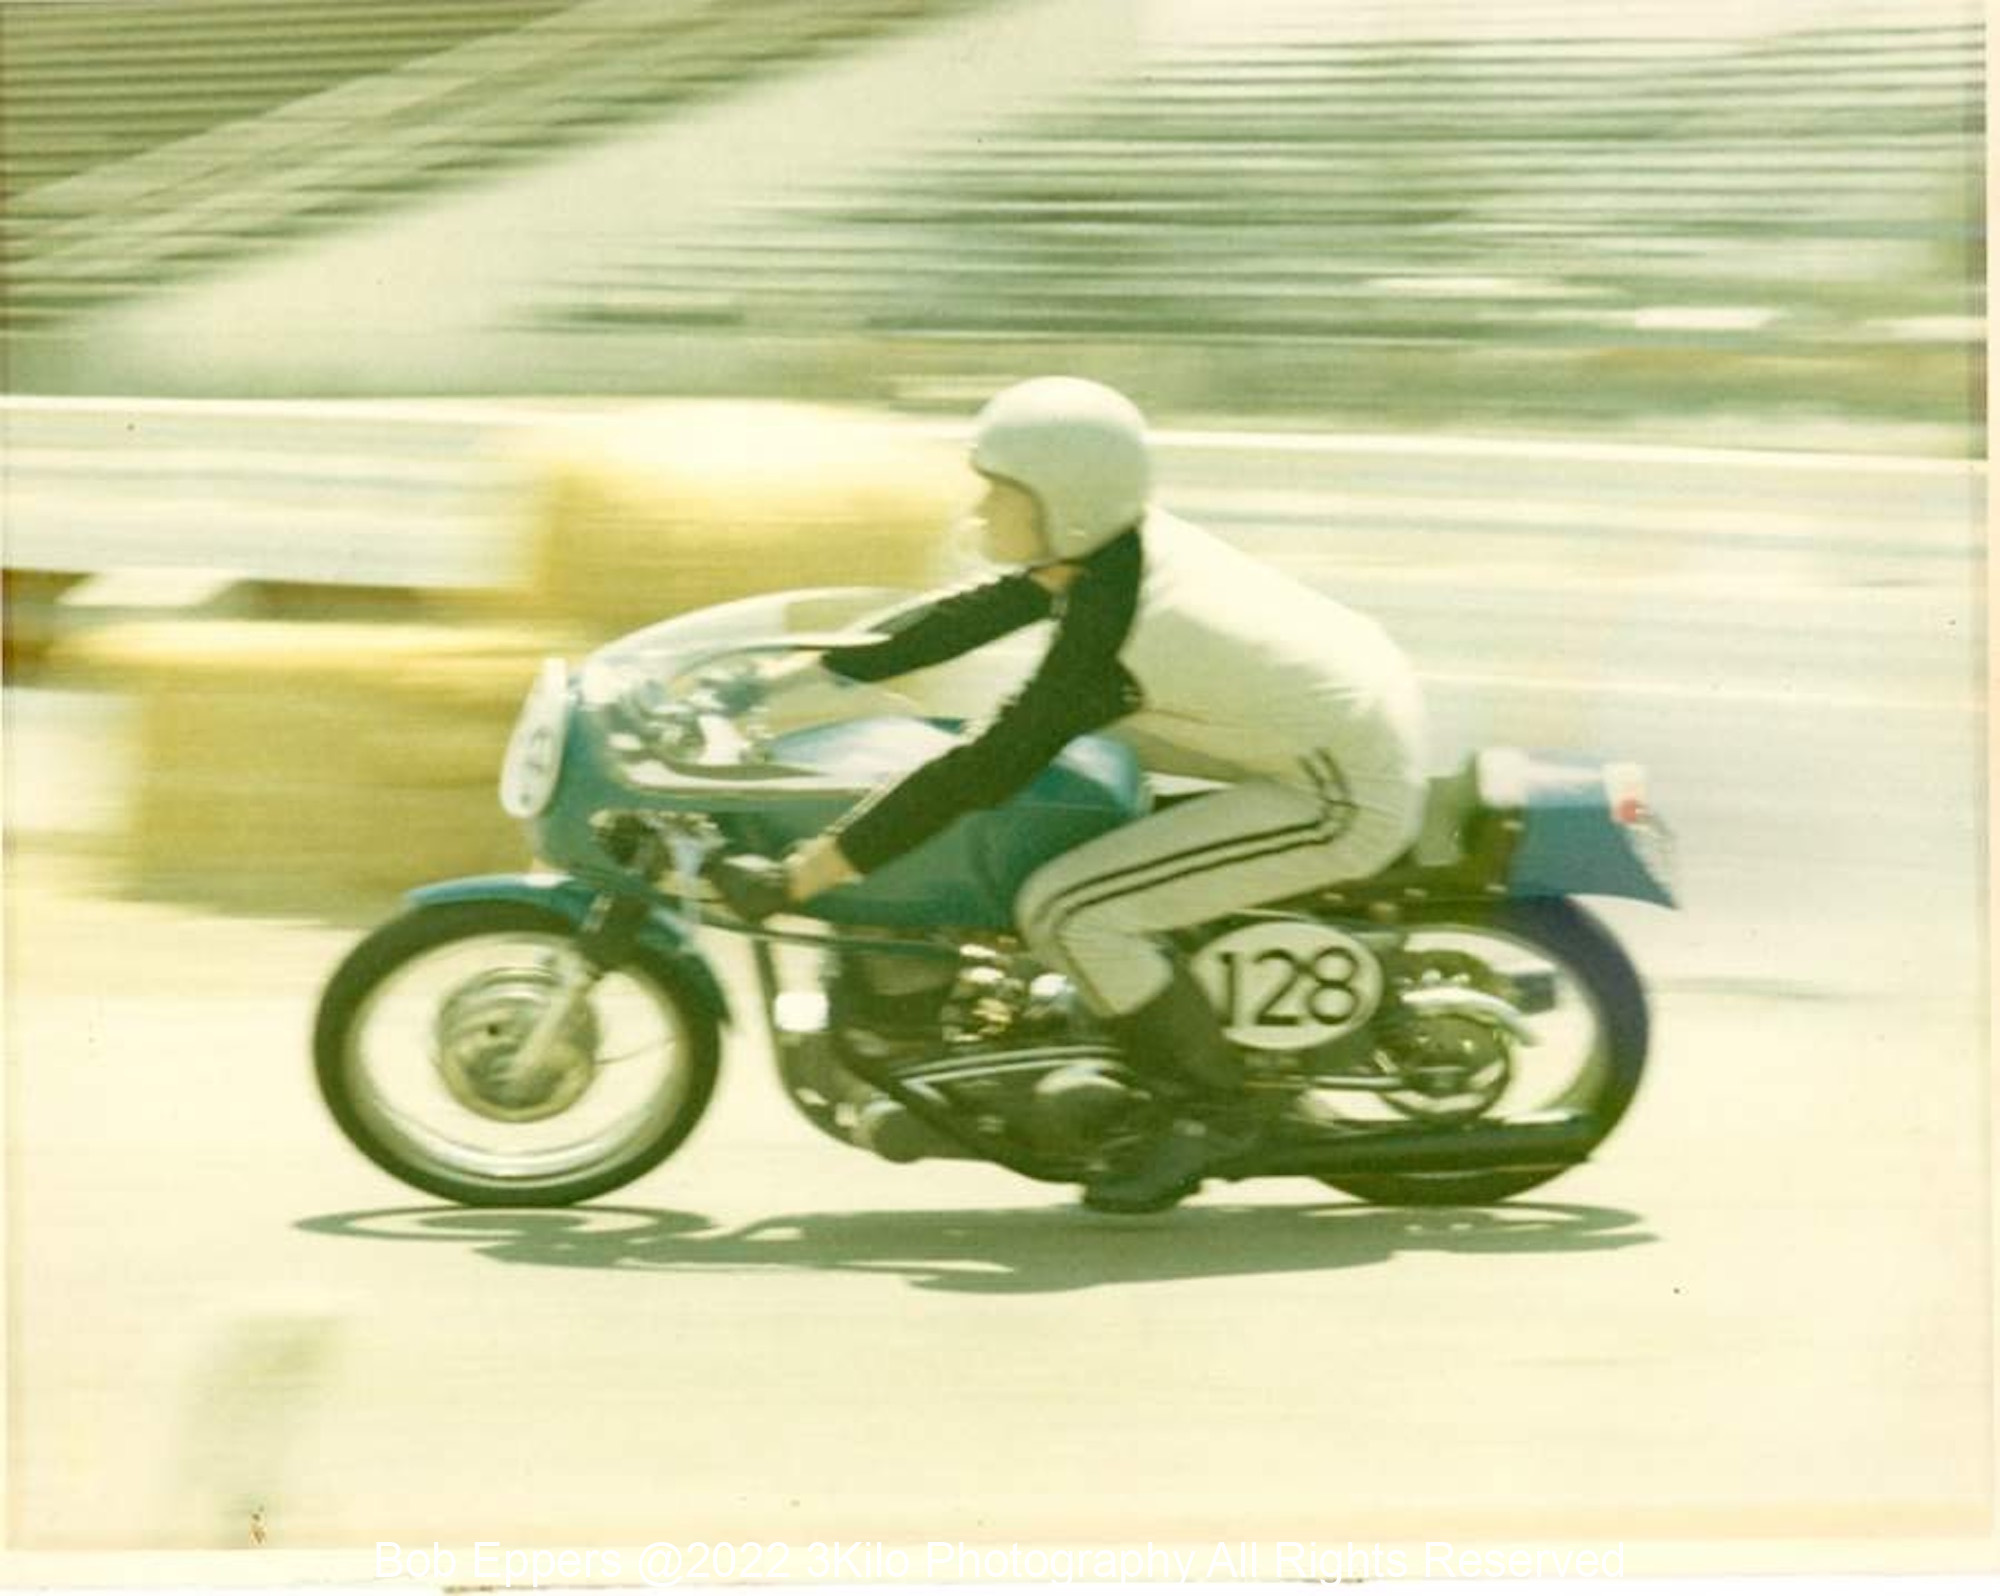 Photo taken at my first Road Race at OCIR.  I started dead last and finished 3rd behind the Factory Nortons of Bull Manley and Jack Simmons.